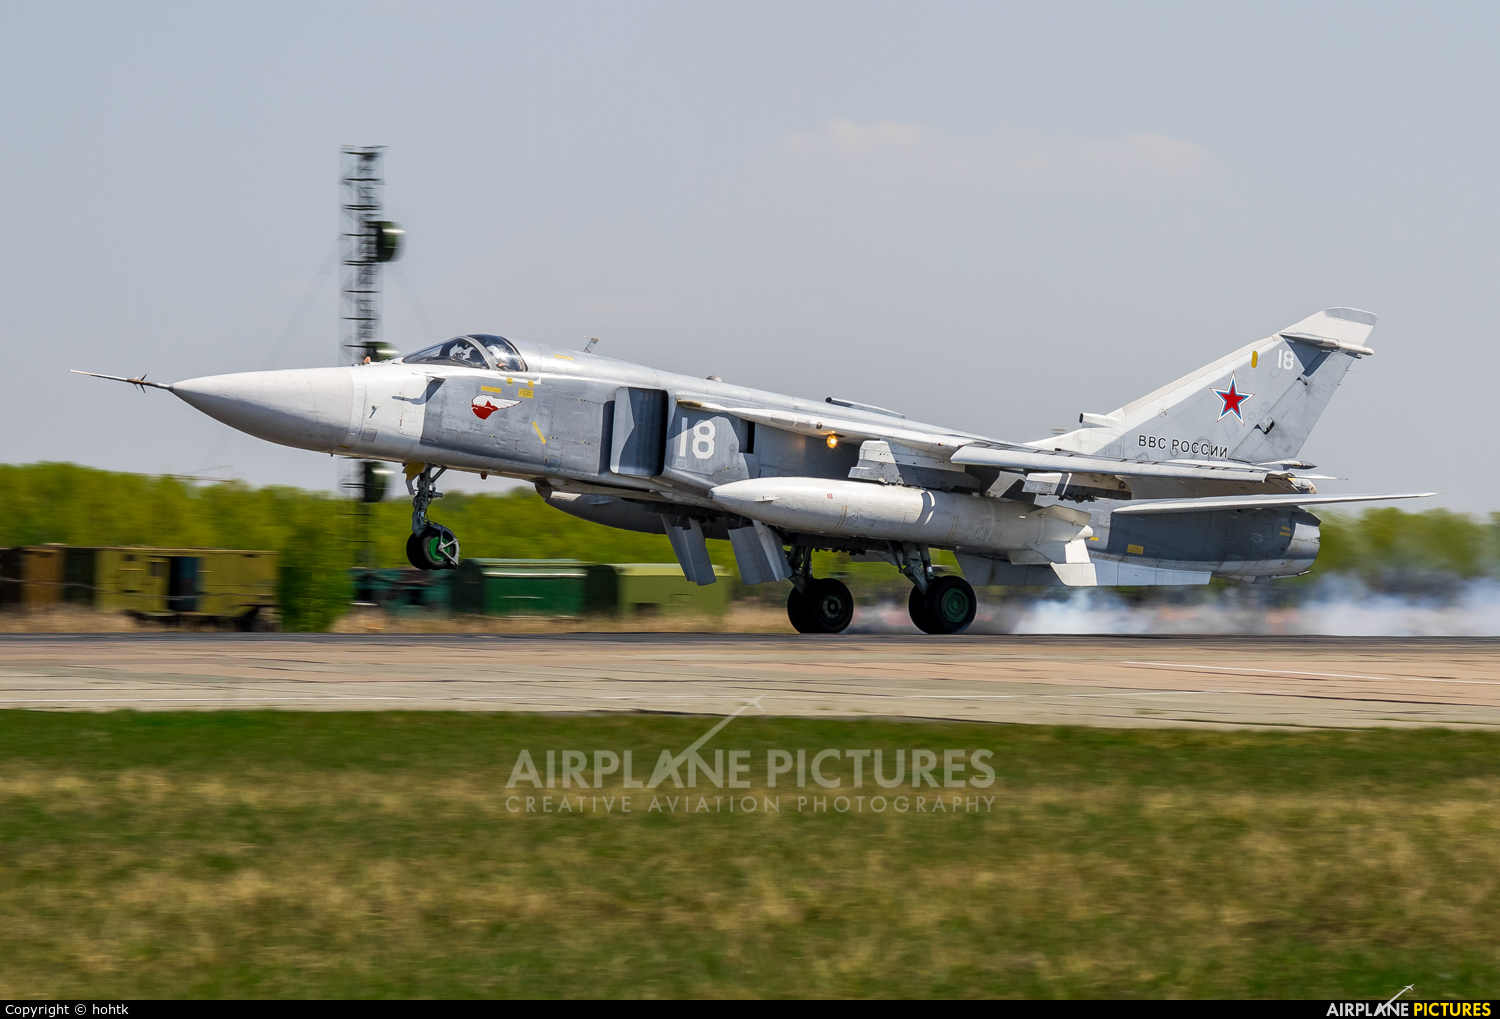 Russia - Air Force 18 aircraft at Undisclosed Location